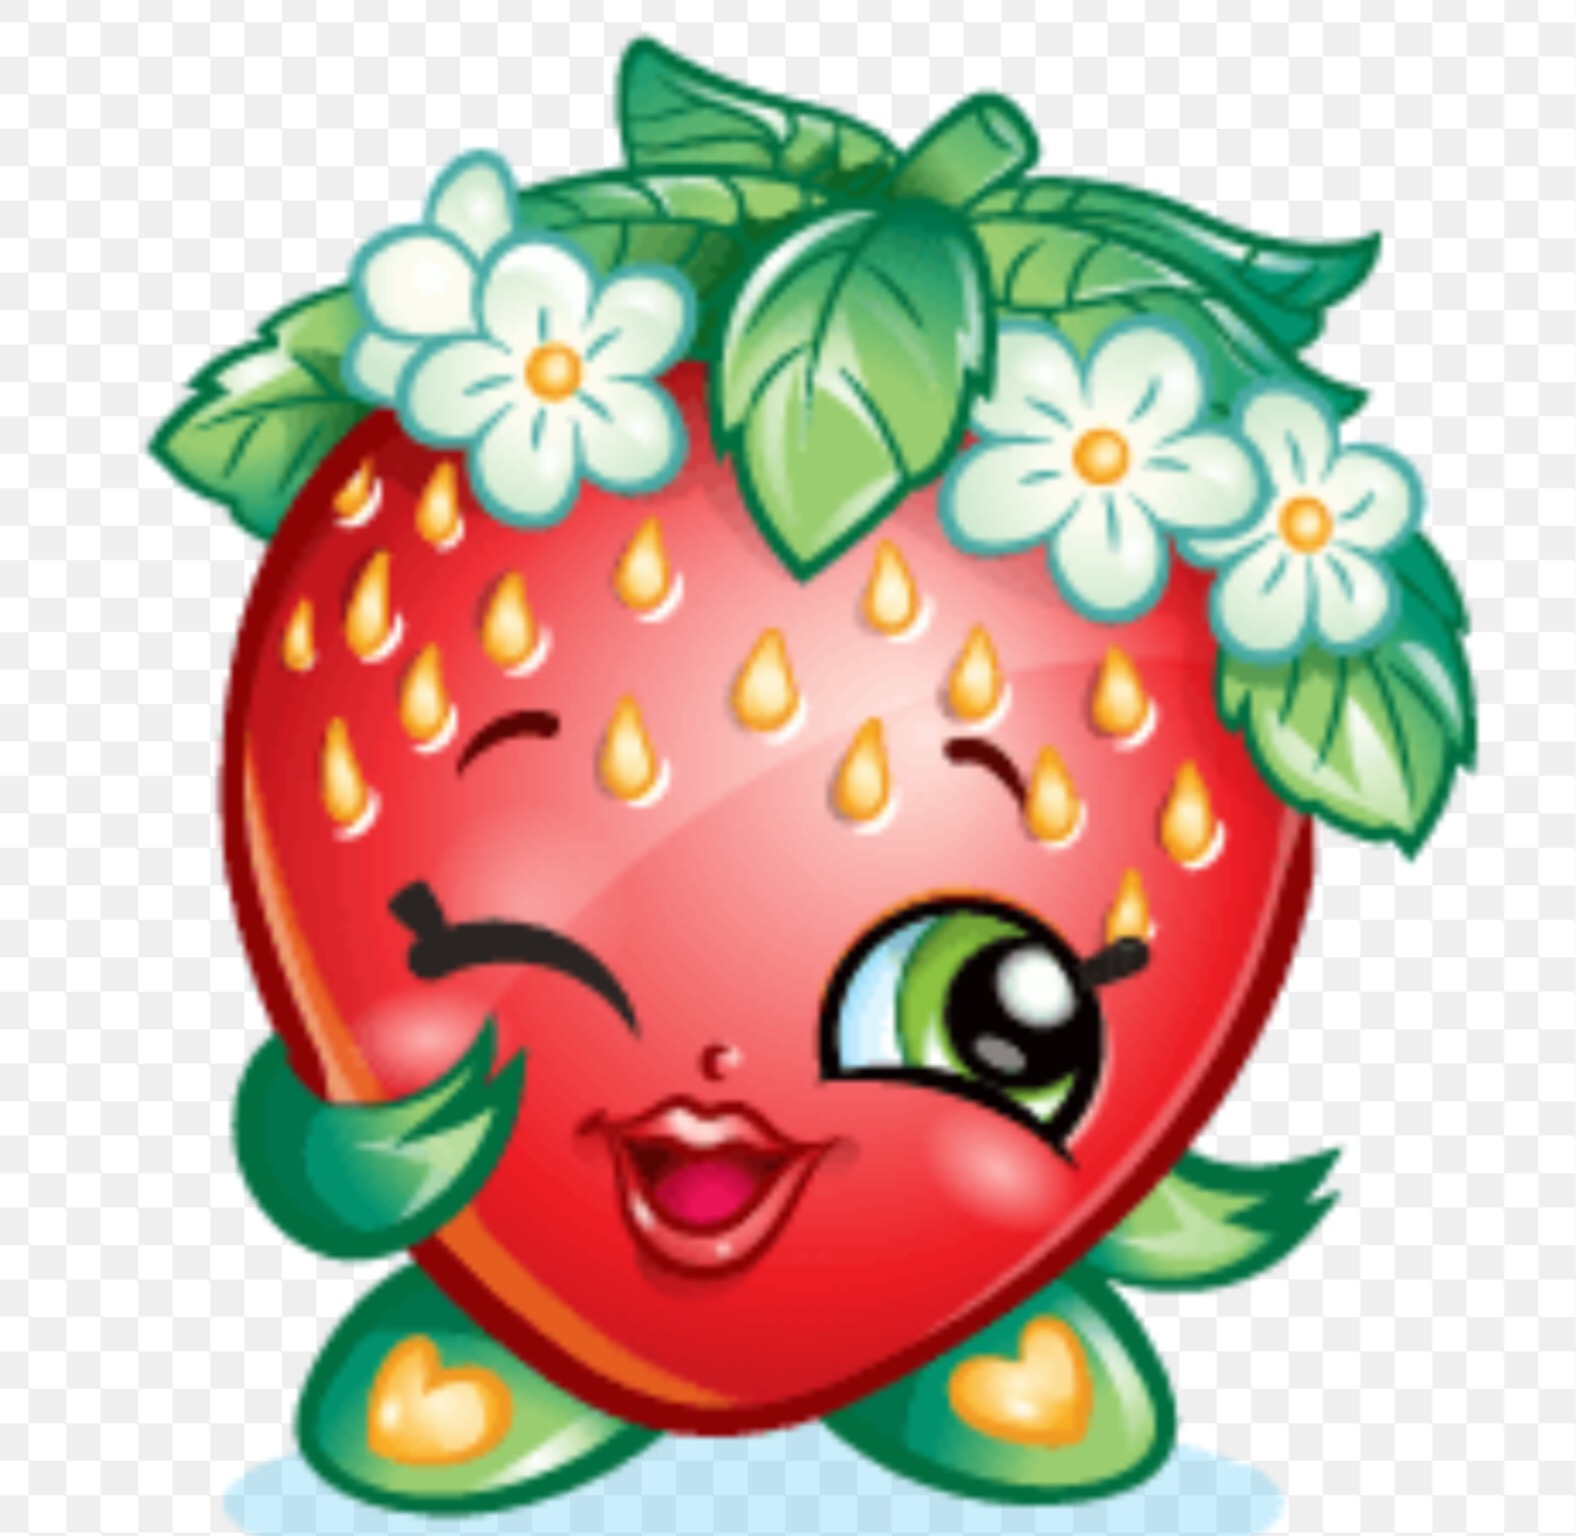 1576x1536 One Of My Fave Shopkins Shopkins Strawberry Strawberryk